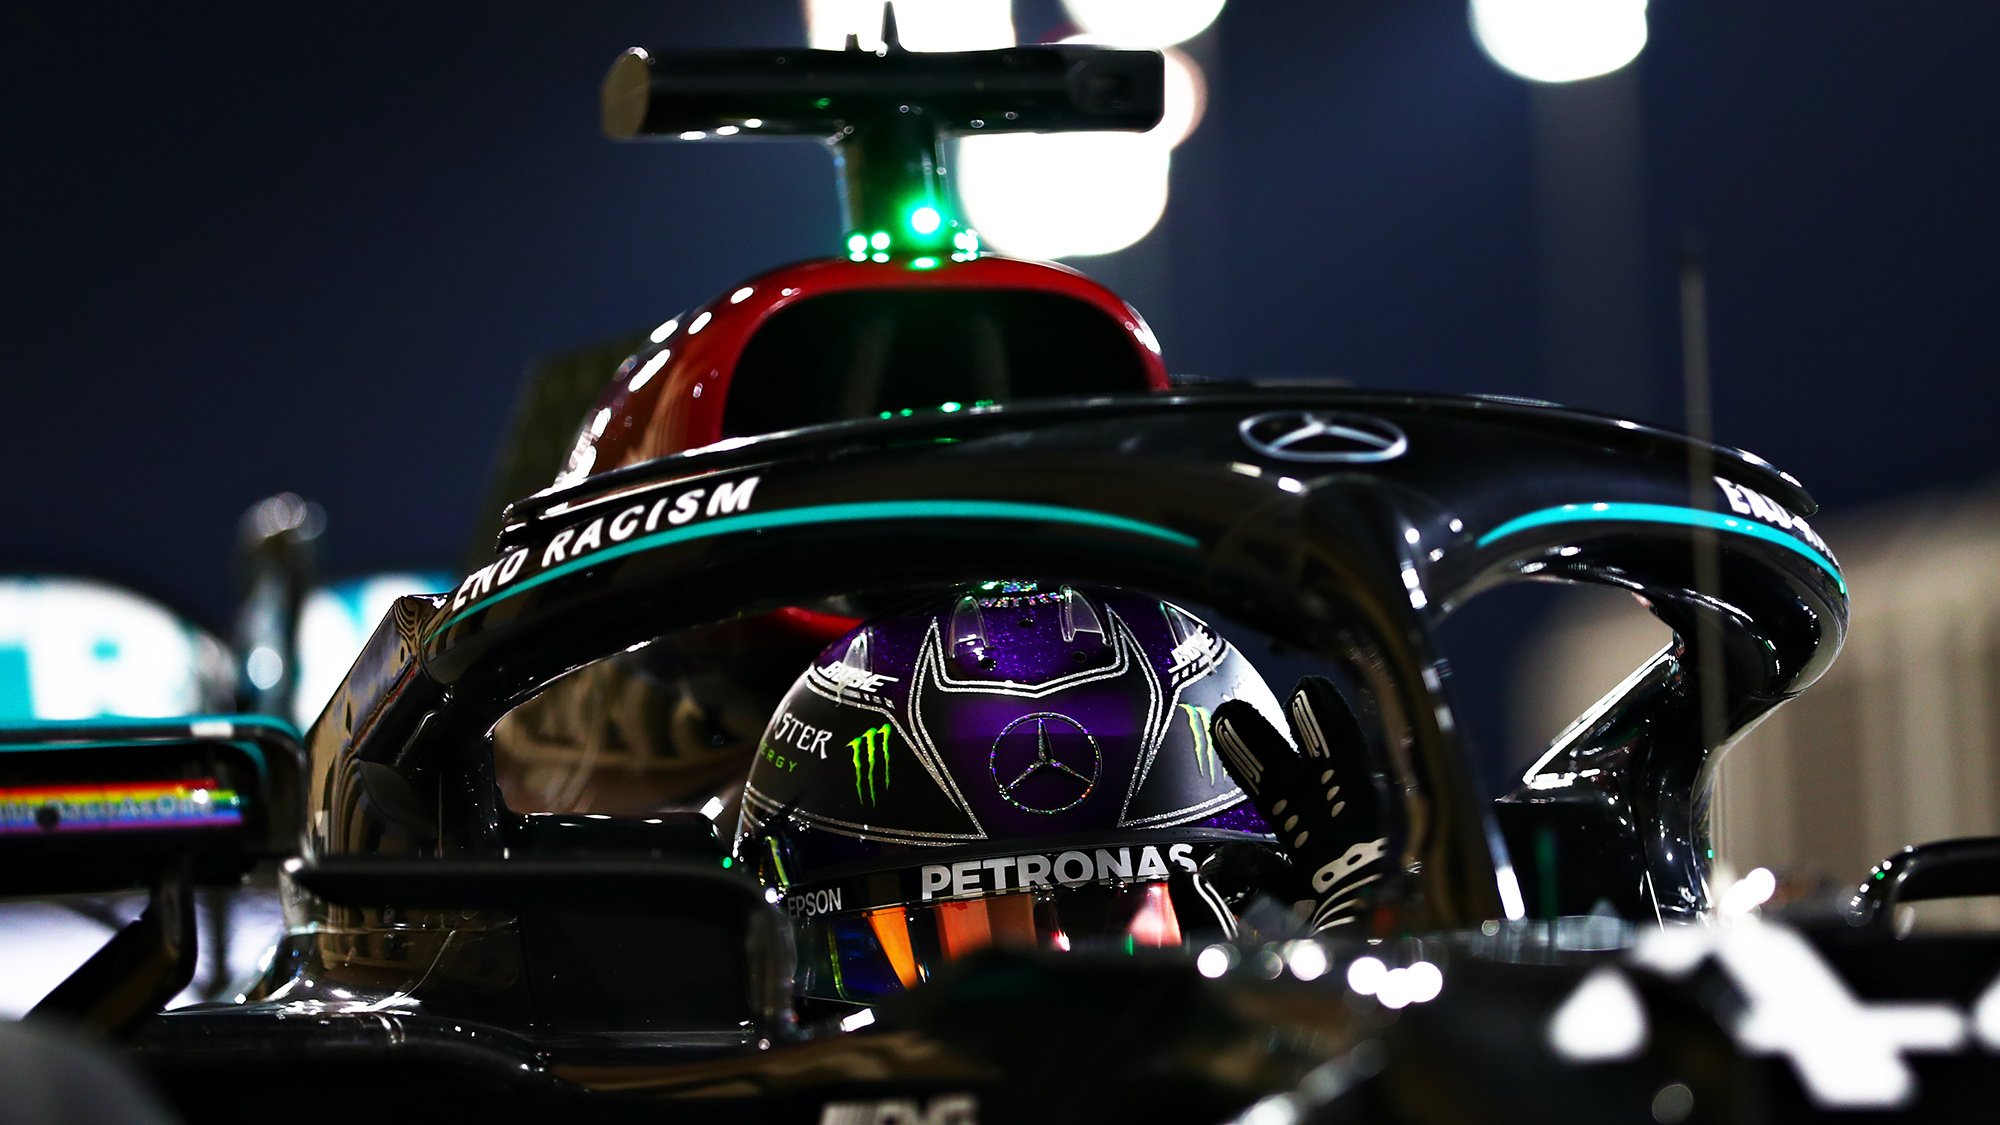 Lewis Hamilton gives the ok sign after qualifying on pole for the 2020 F1 Bahrain Grand Prix